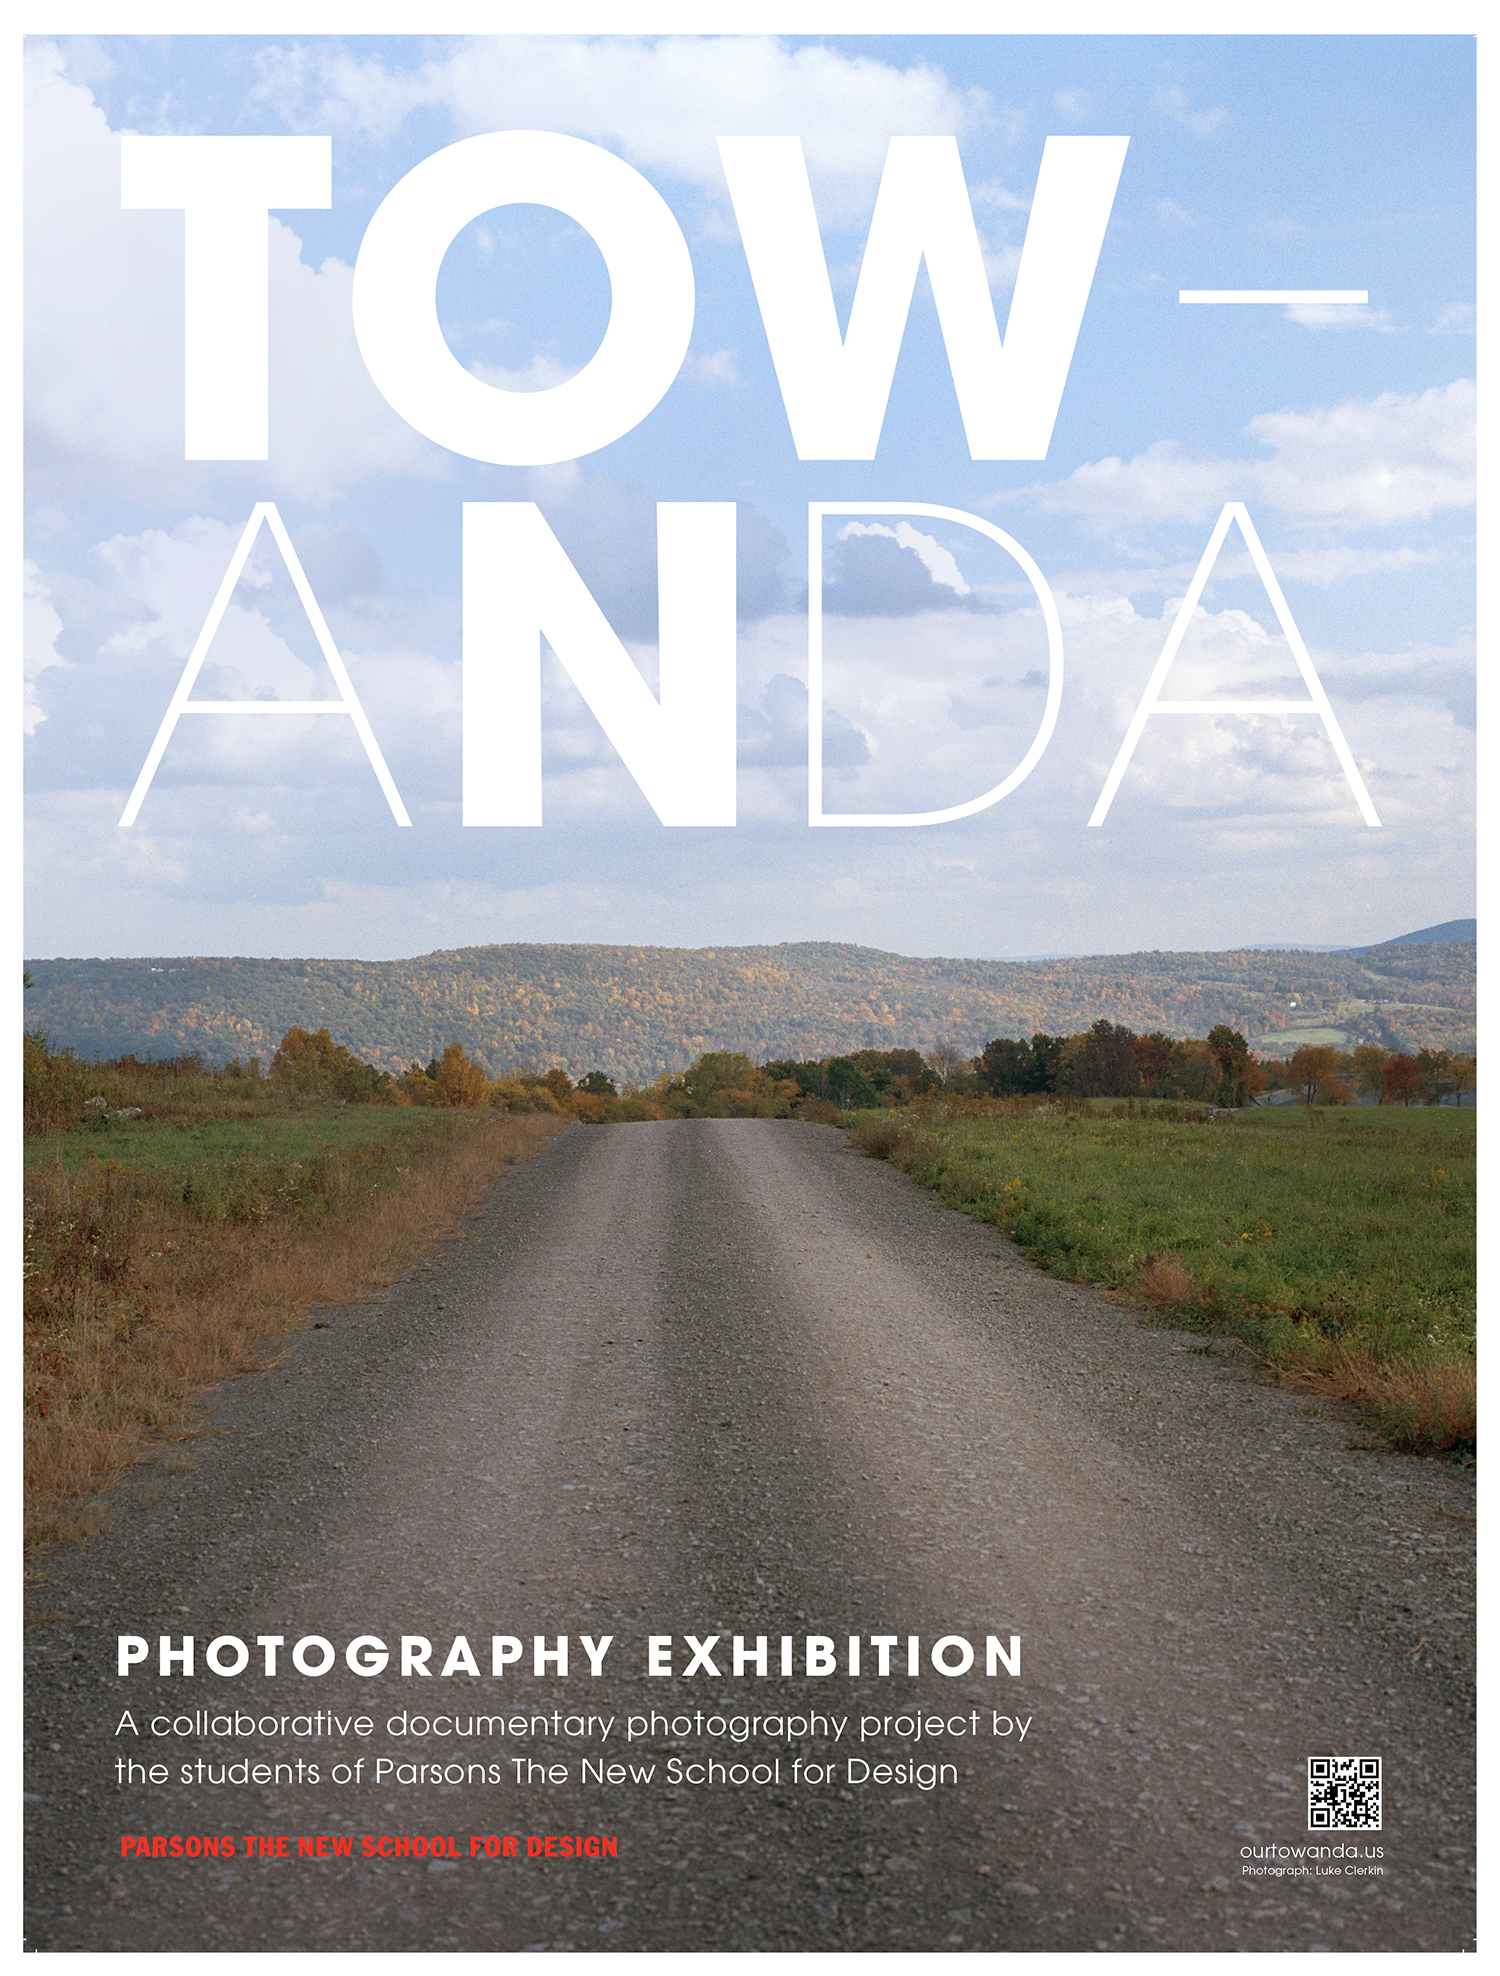 Exhibition Poster/Catalog Front(collaboration)